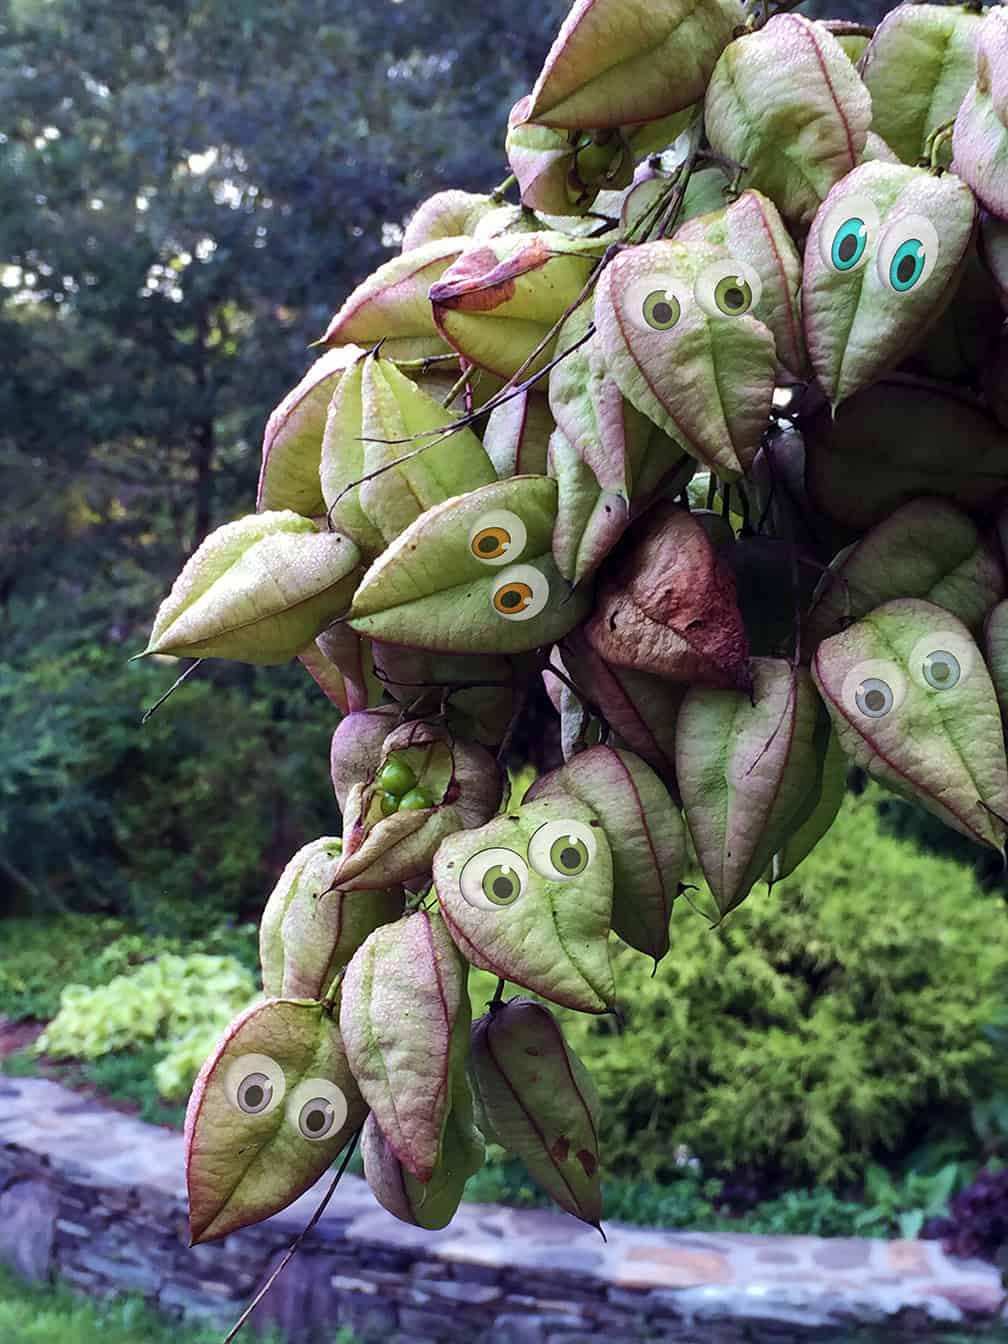 The pods just beg to have googly eyes added in Photoshop. Do you ever feel like you're being watched in the garden?